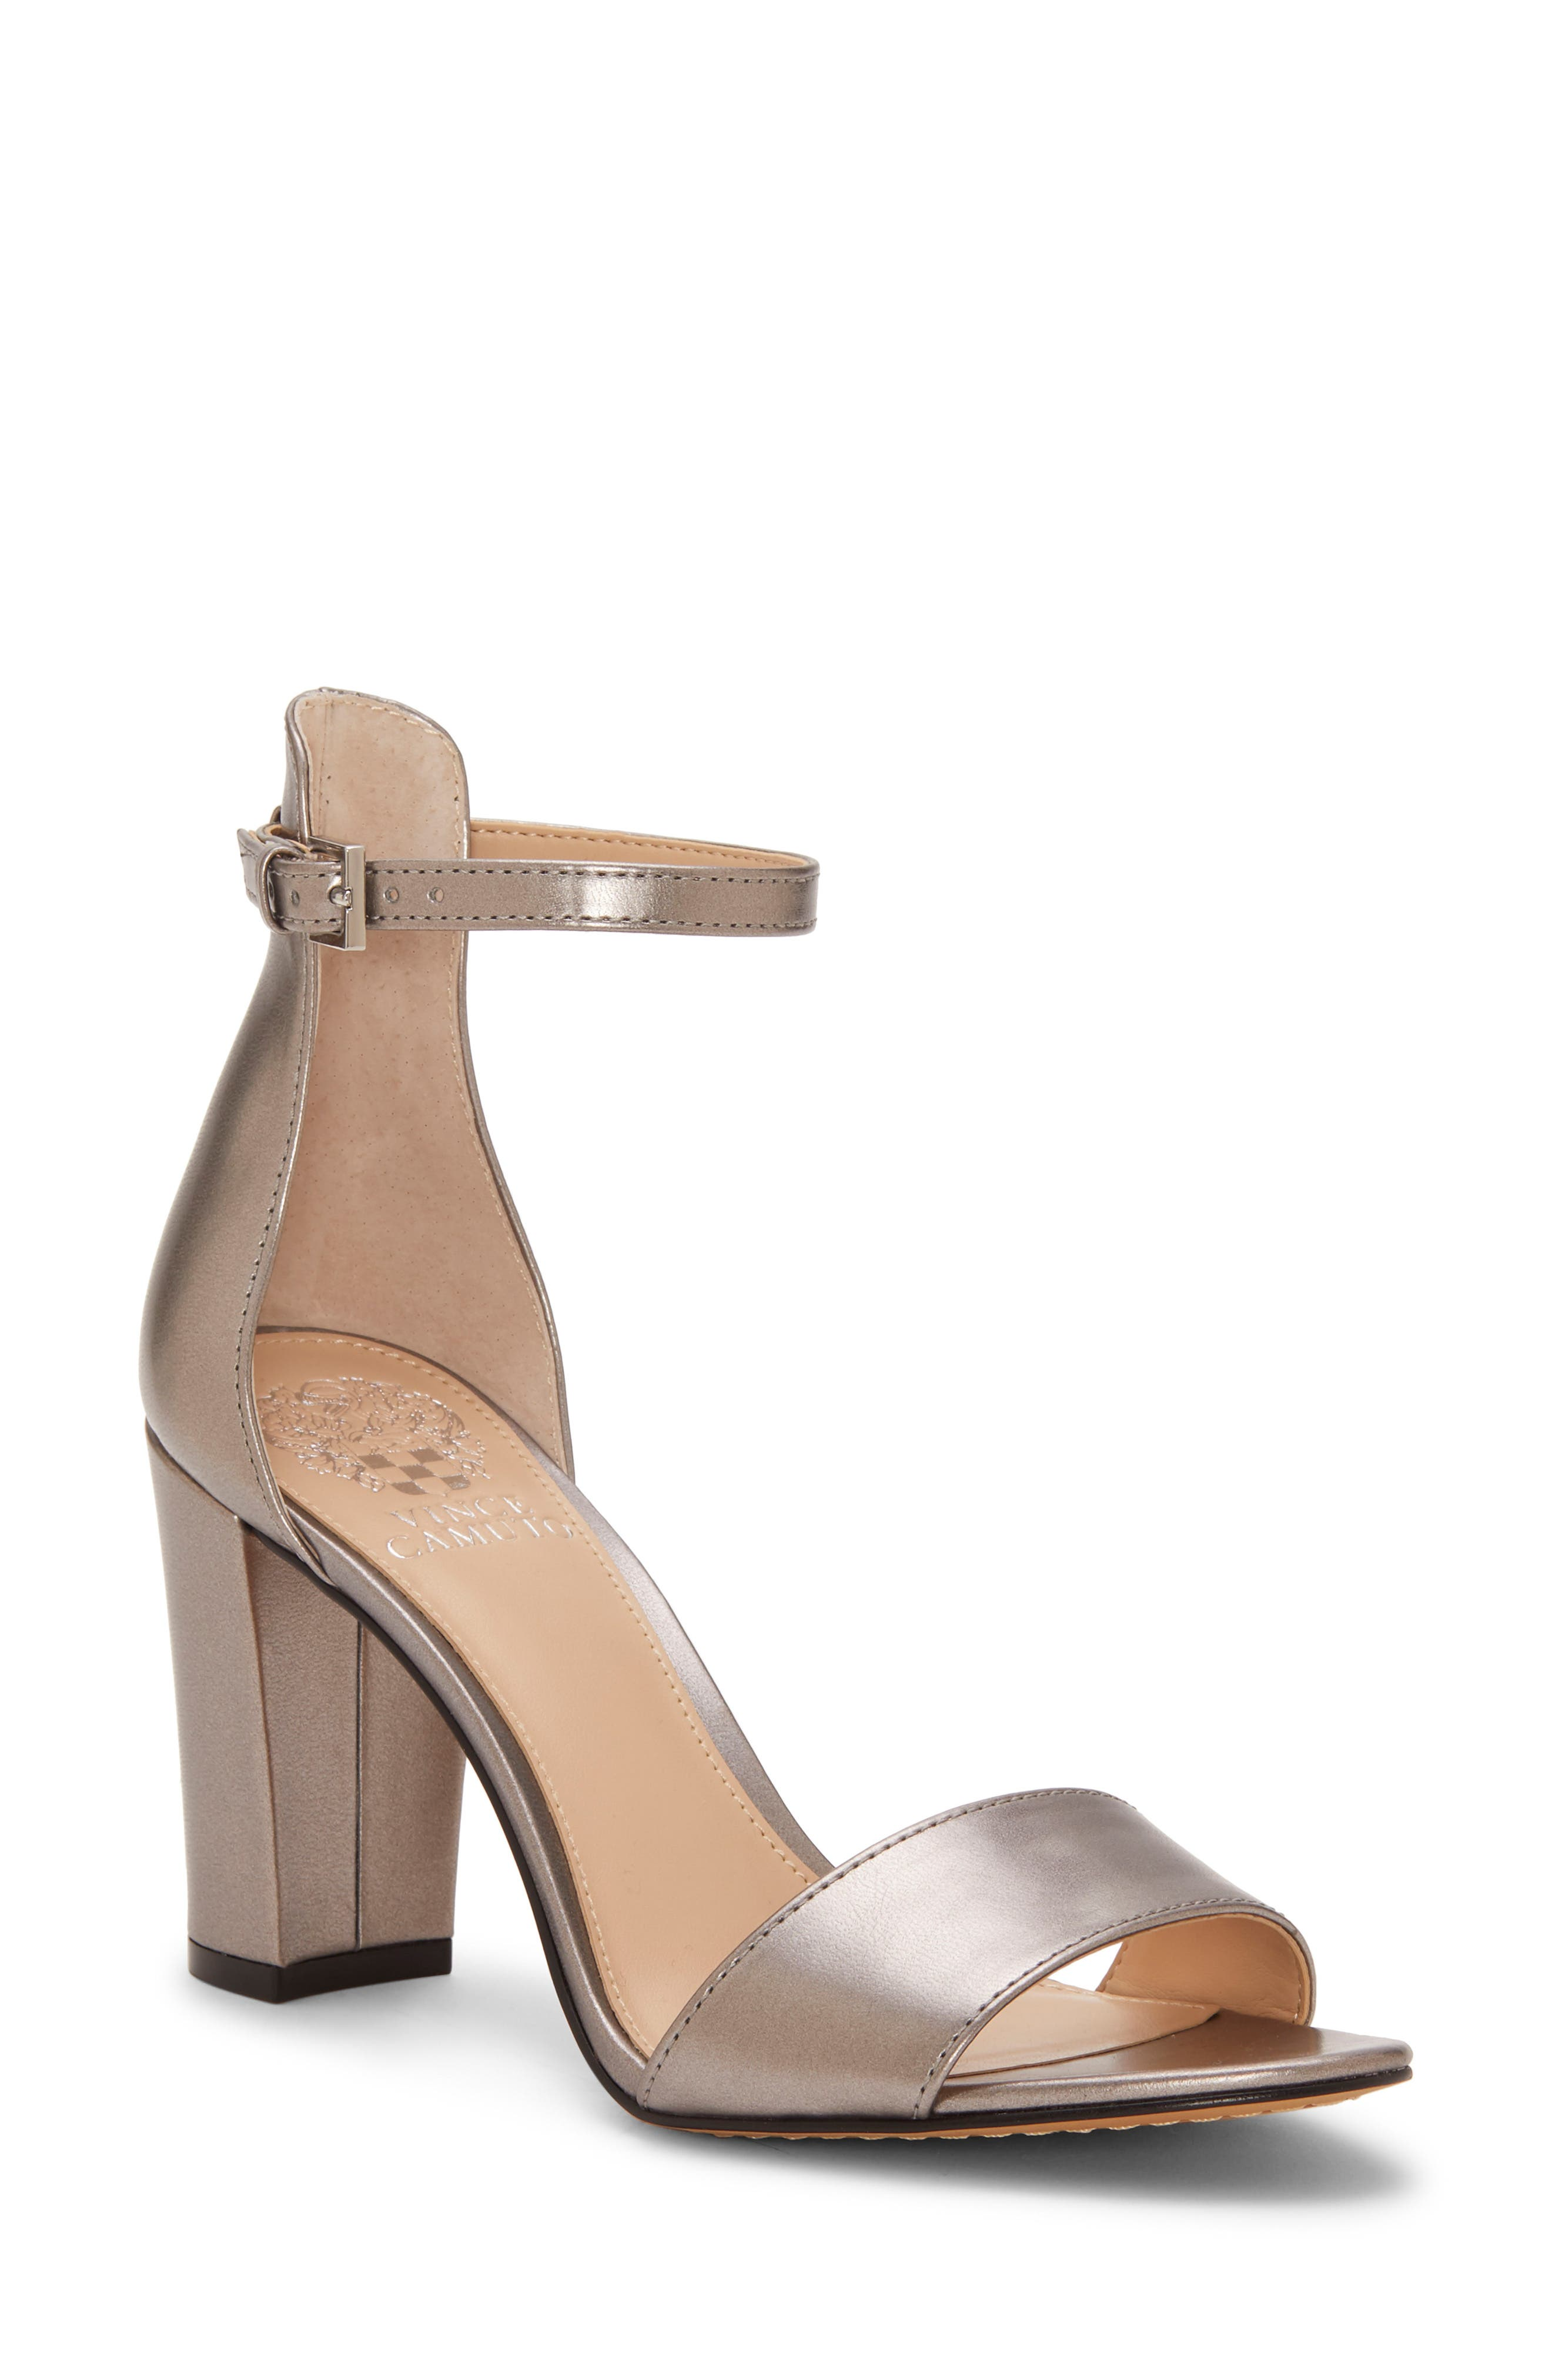 VINCE CAMUTO,                             Corlina Ankle Strap Sandal,                             Main thumbnail 1, color,                             METAL GREY